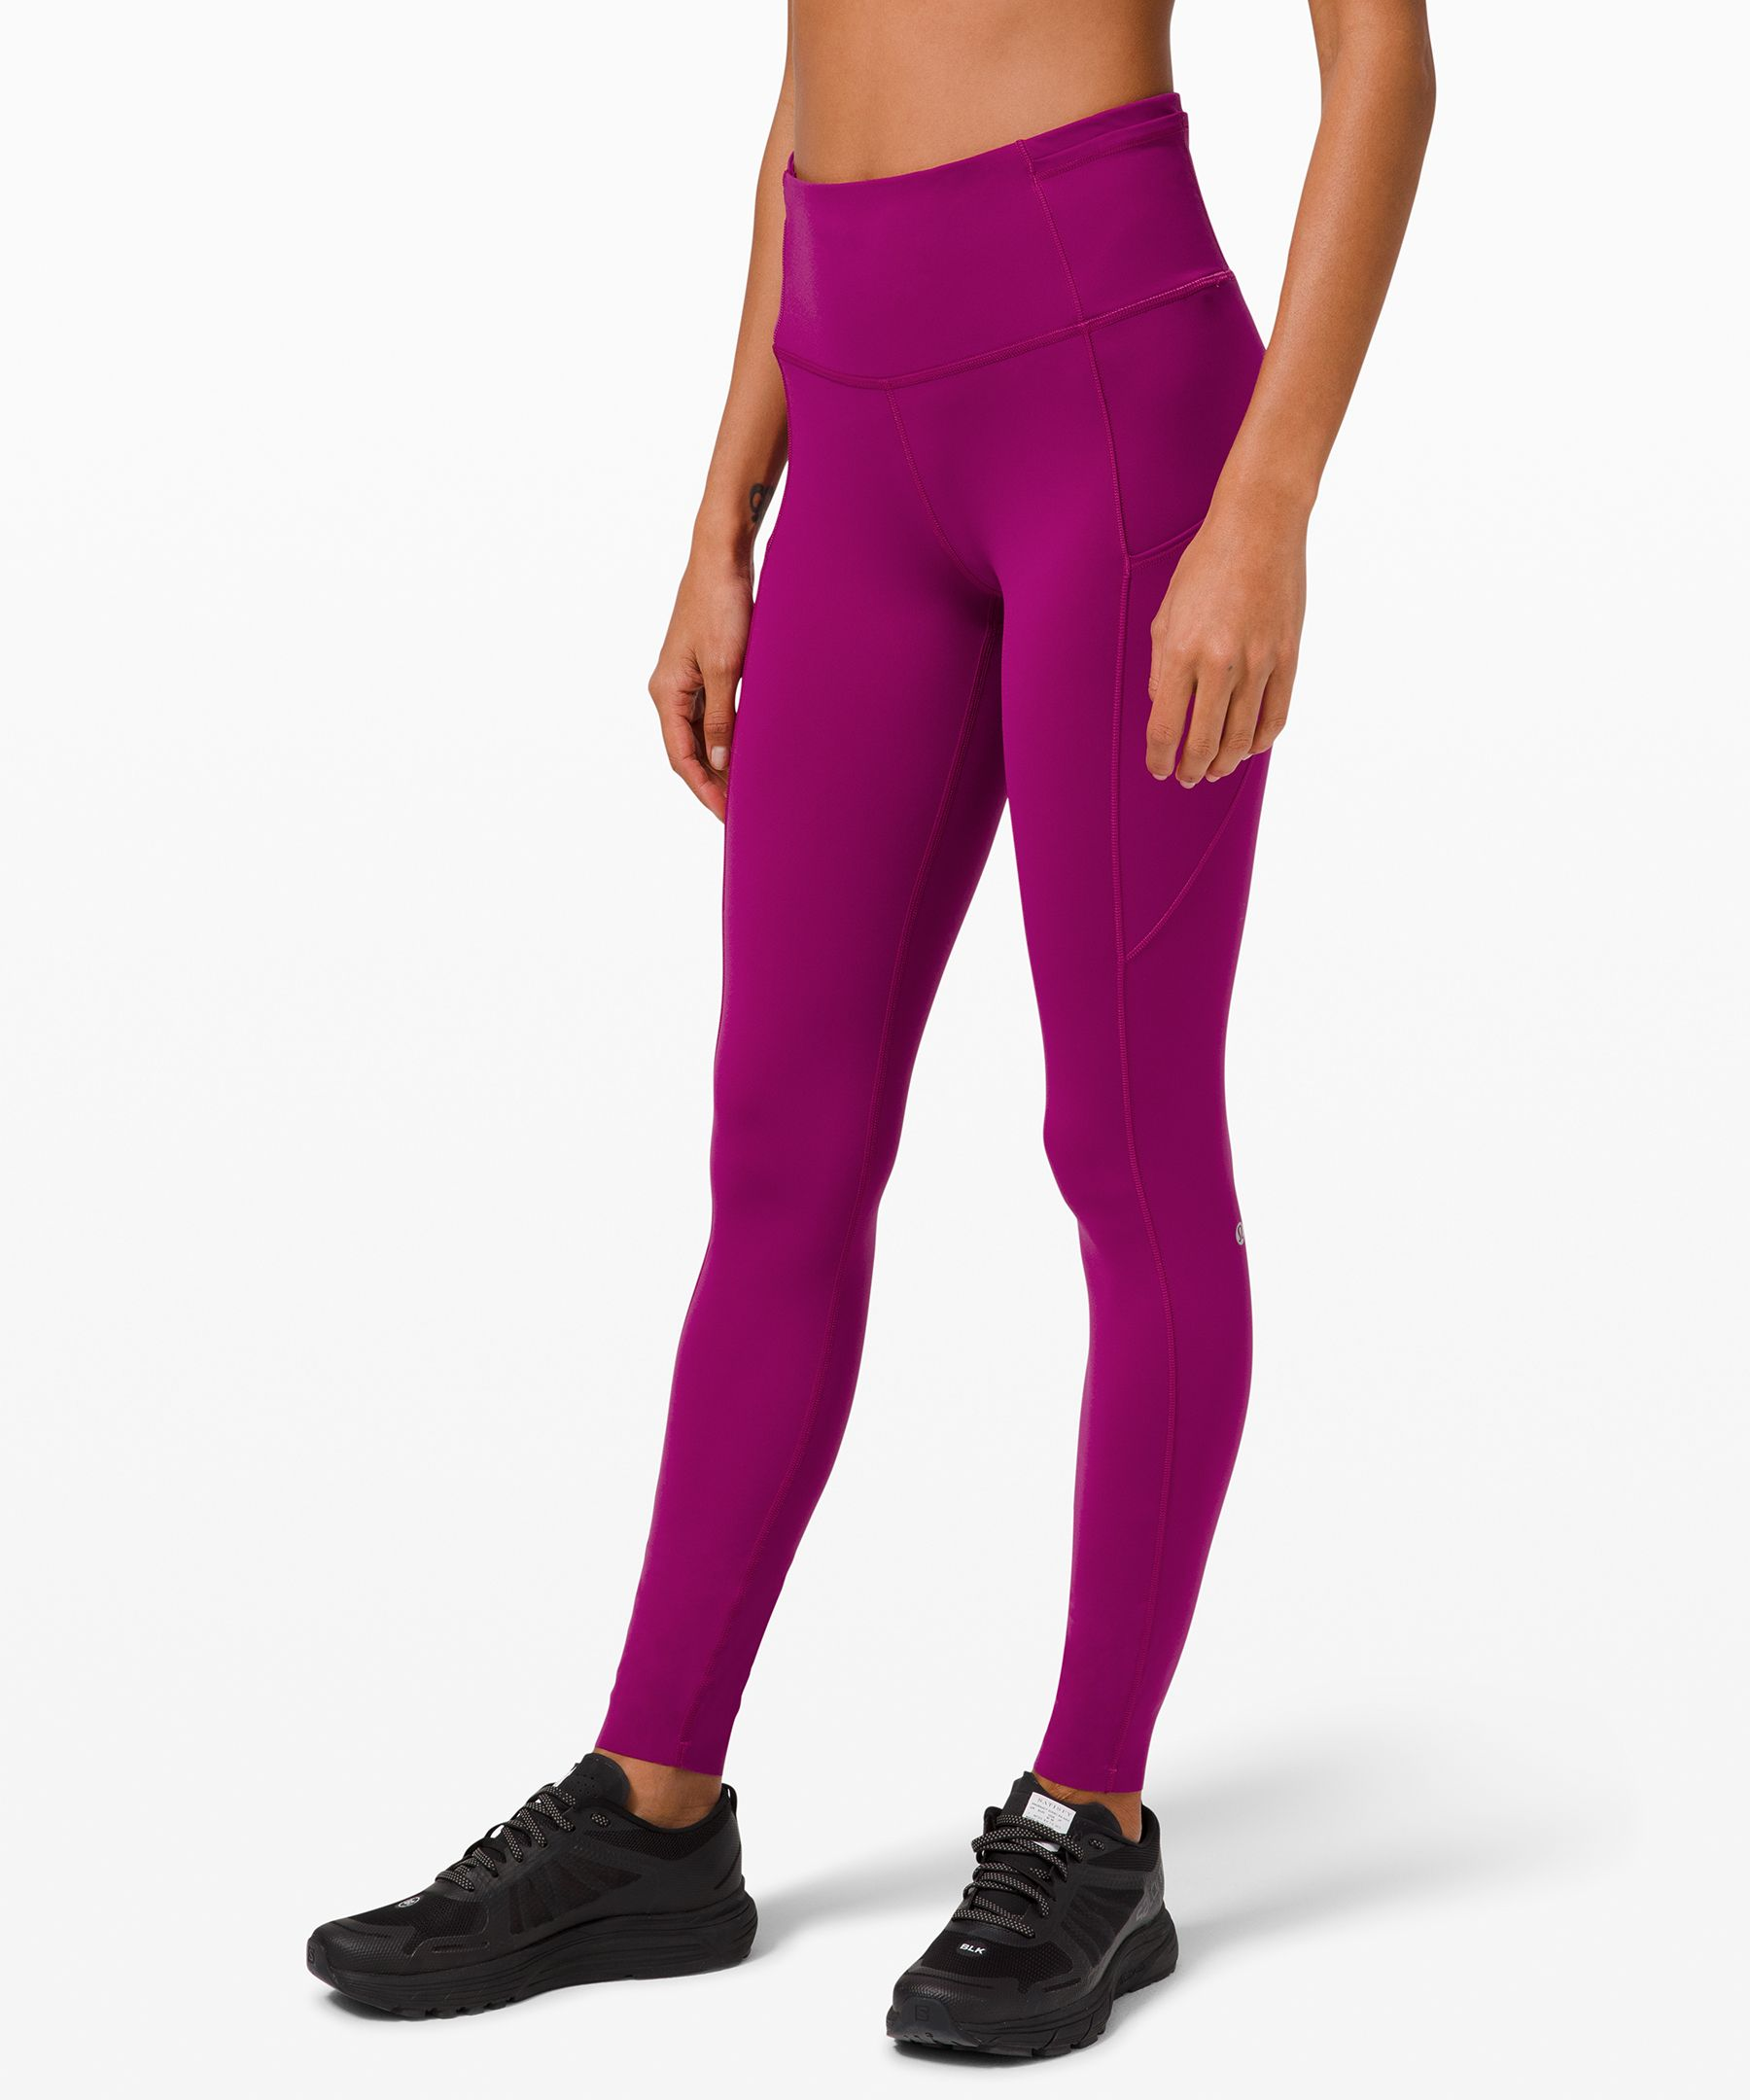 Lululemon Fast and Free High-Rise Tight 28